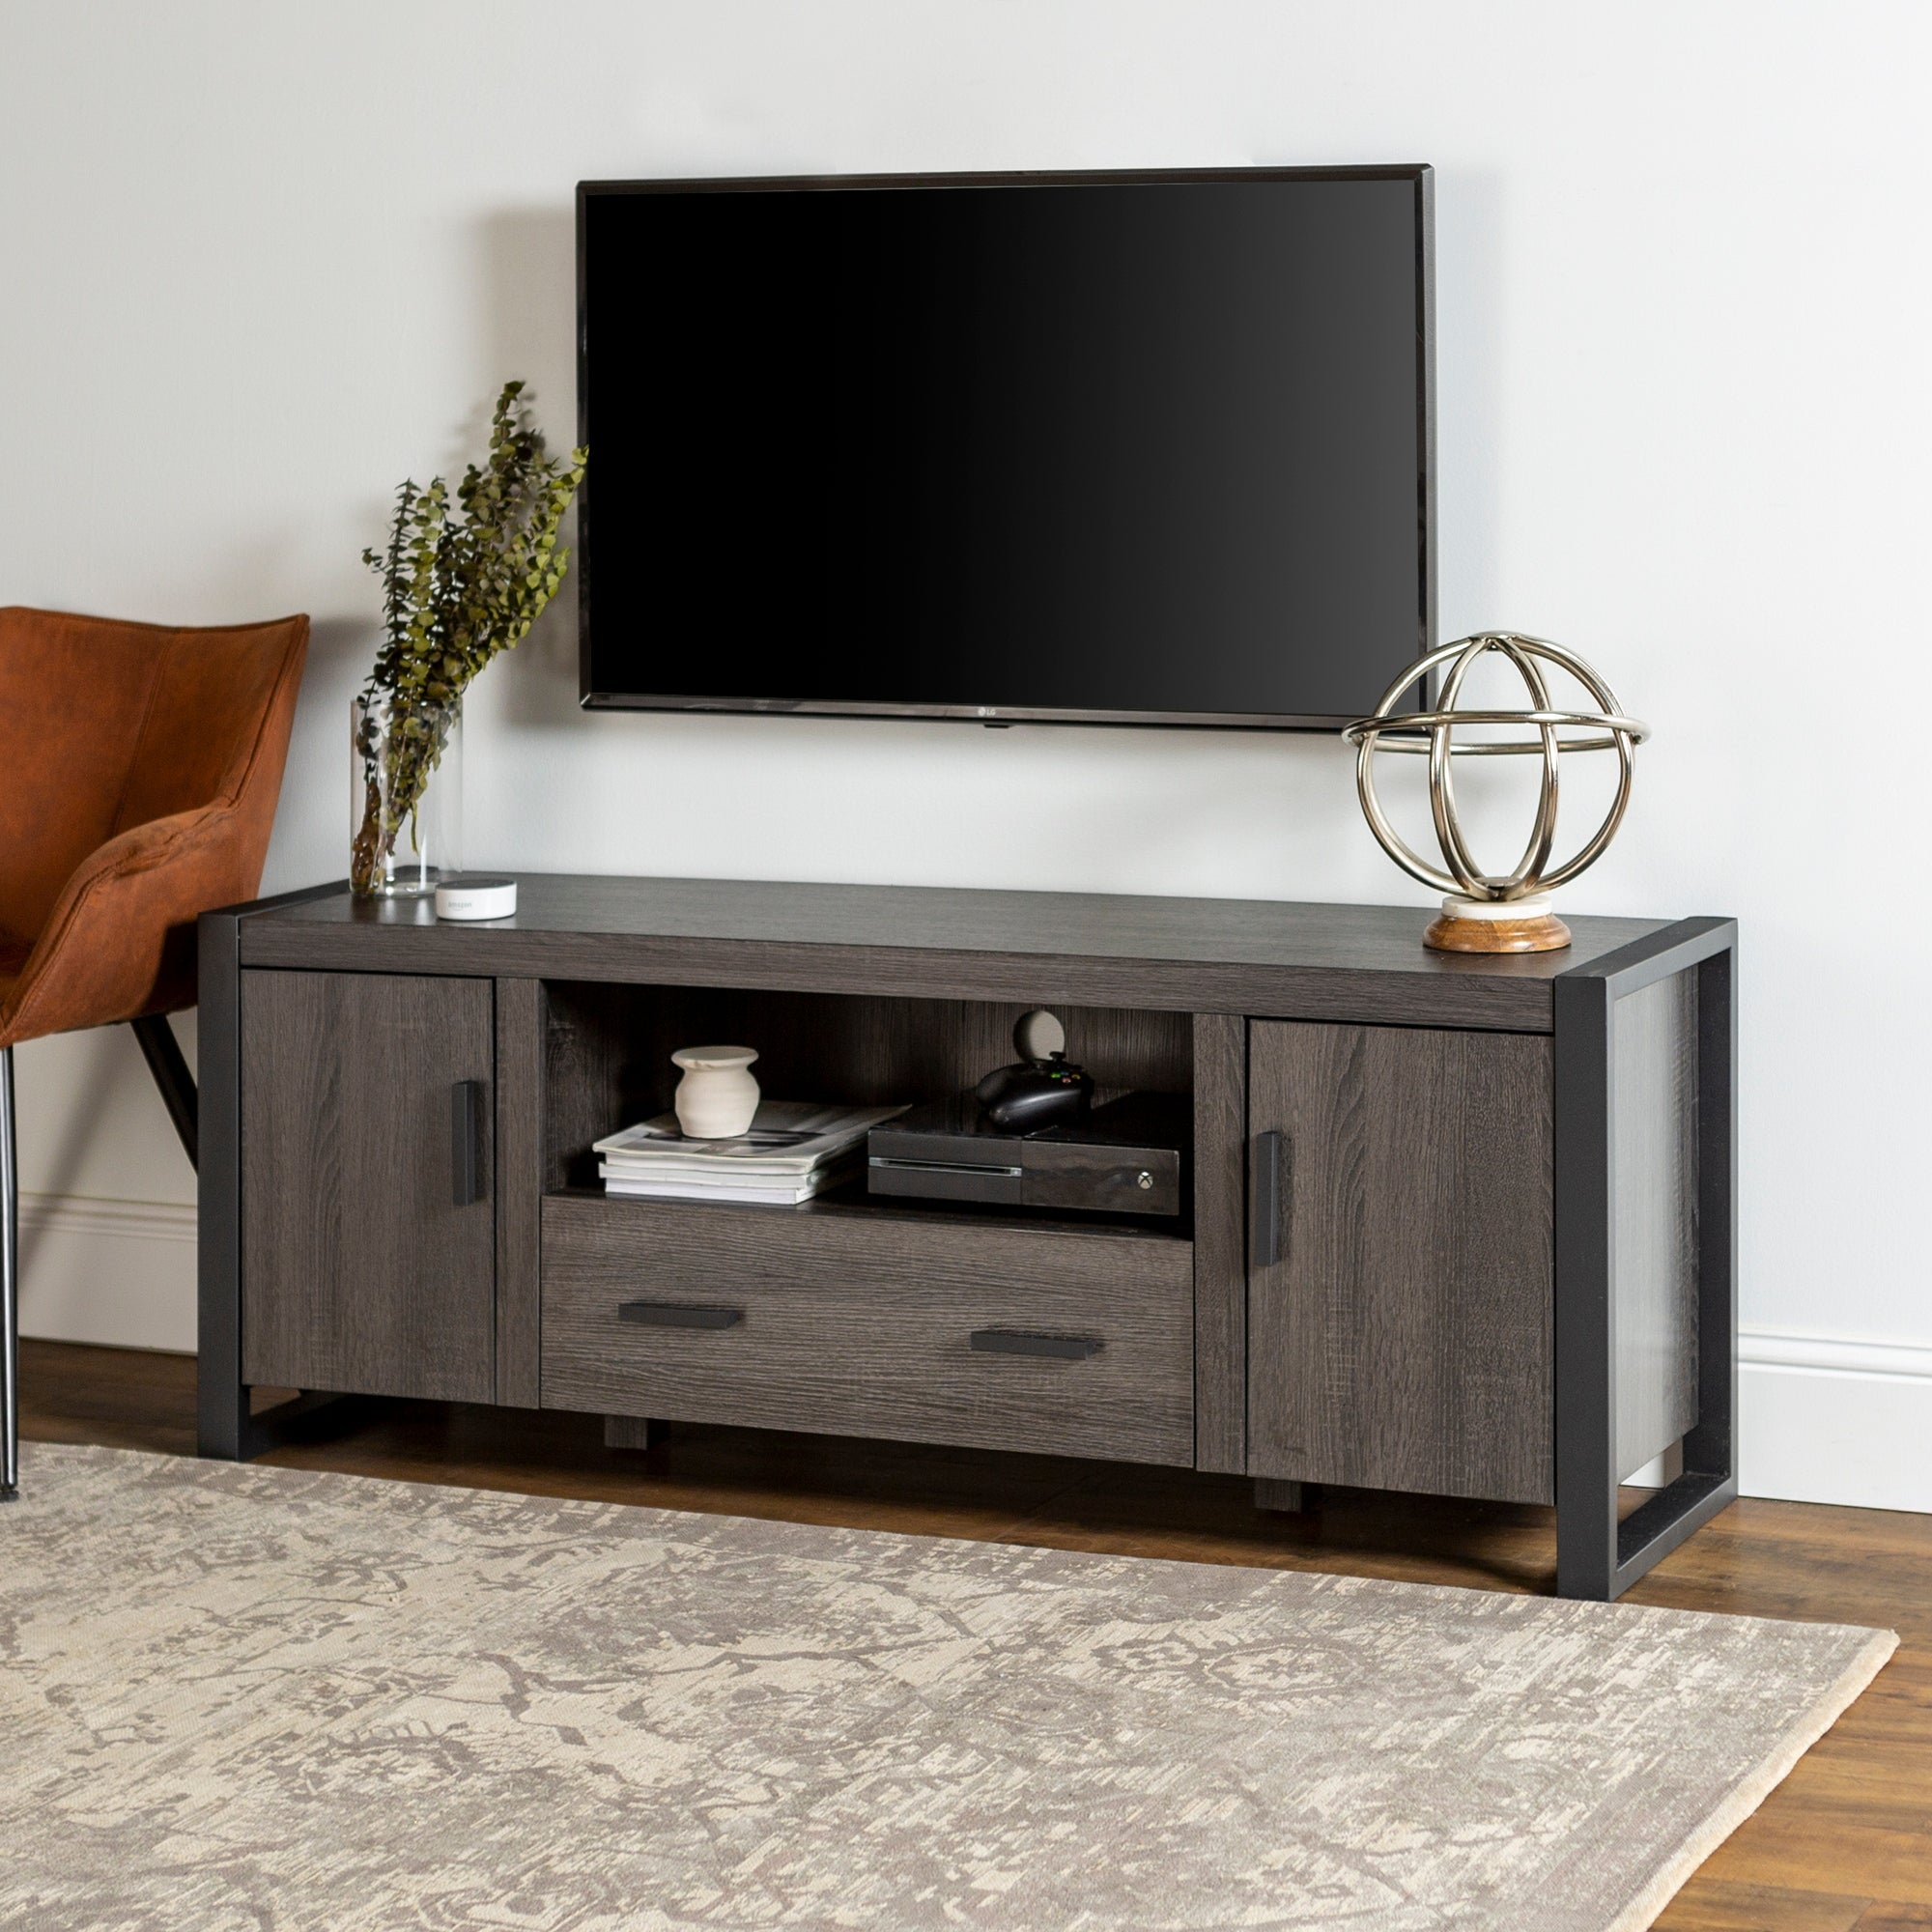 Middlebrook Designs Burke 60 Inch Charcoal Urban Tv Stand Console On Sale Overstock 9067315